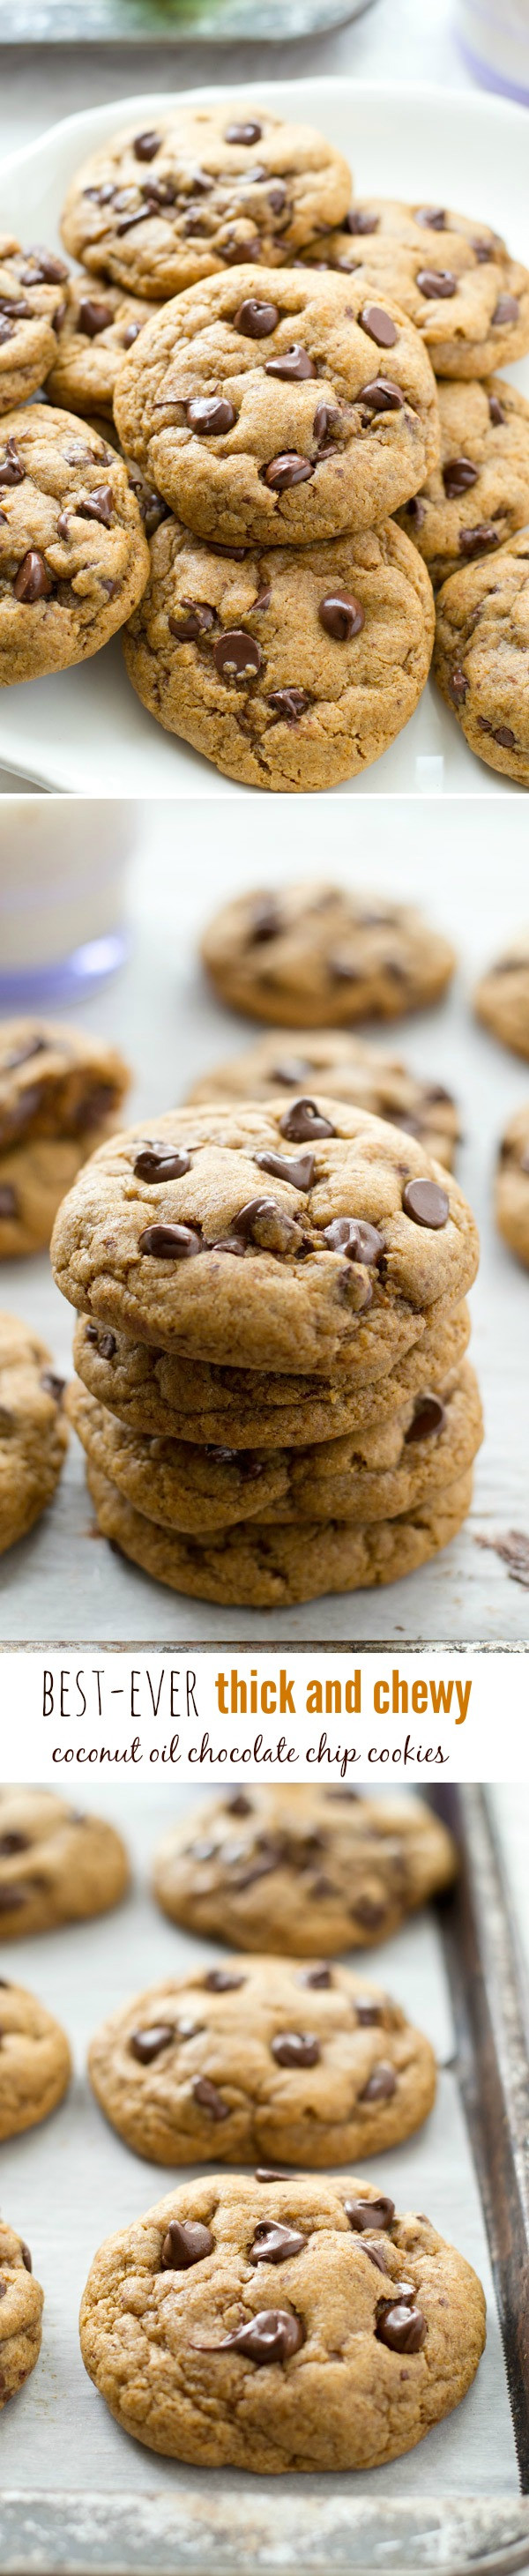 Healthy Chocolate Chip Cookies With Coconut Oil  Thick and Chewy Coconut Oil Chocolate Chip Cookies